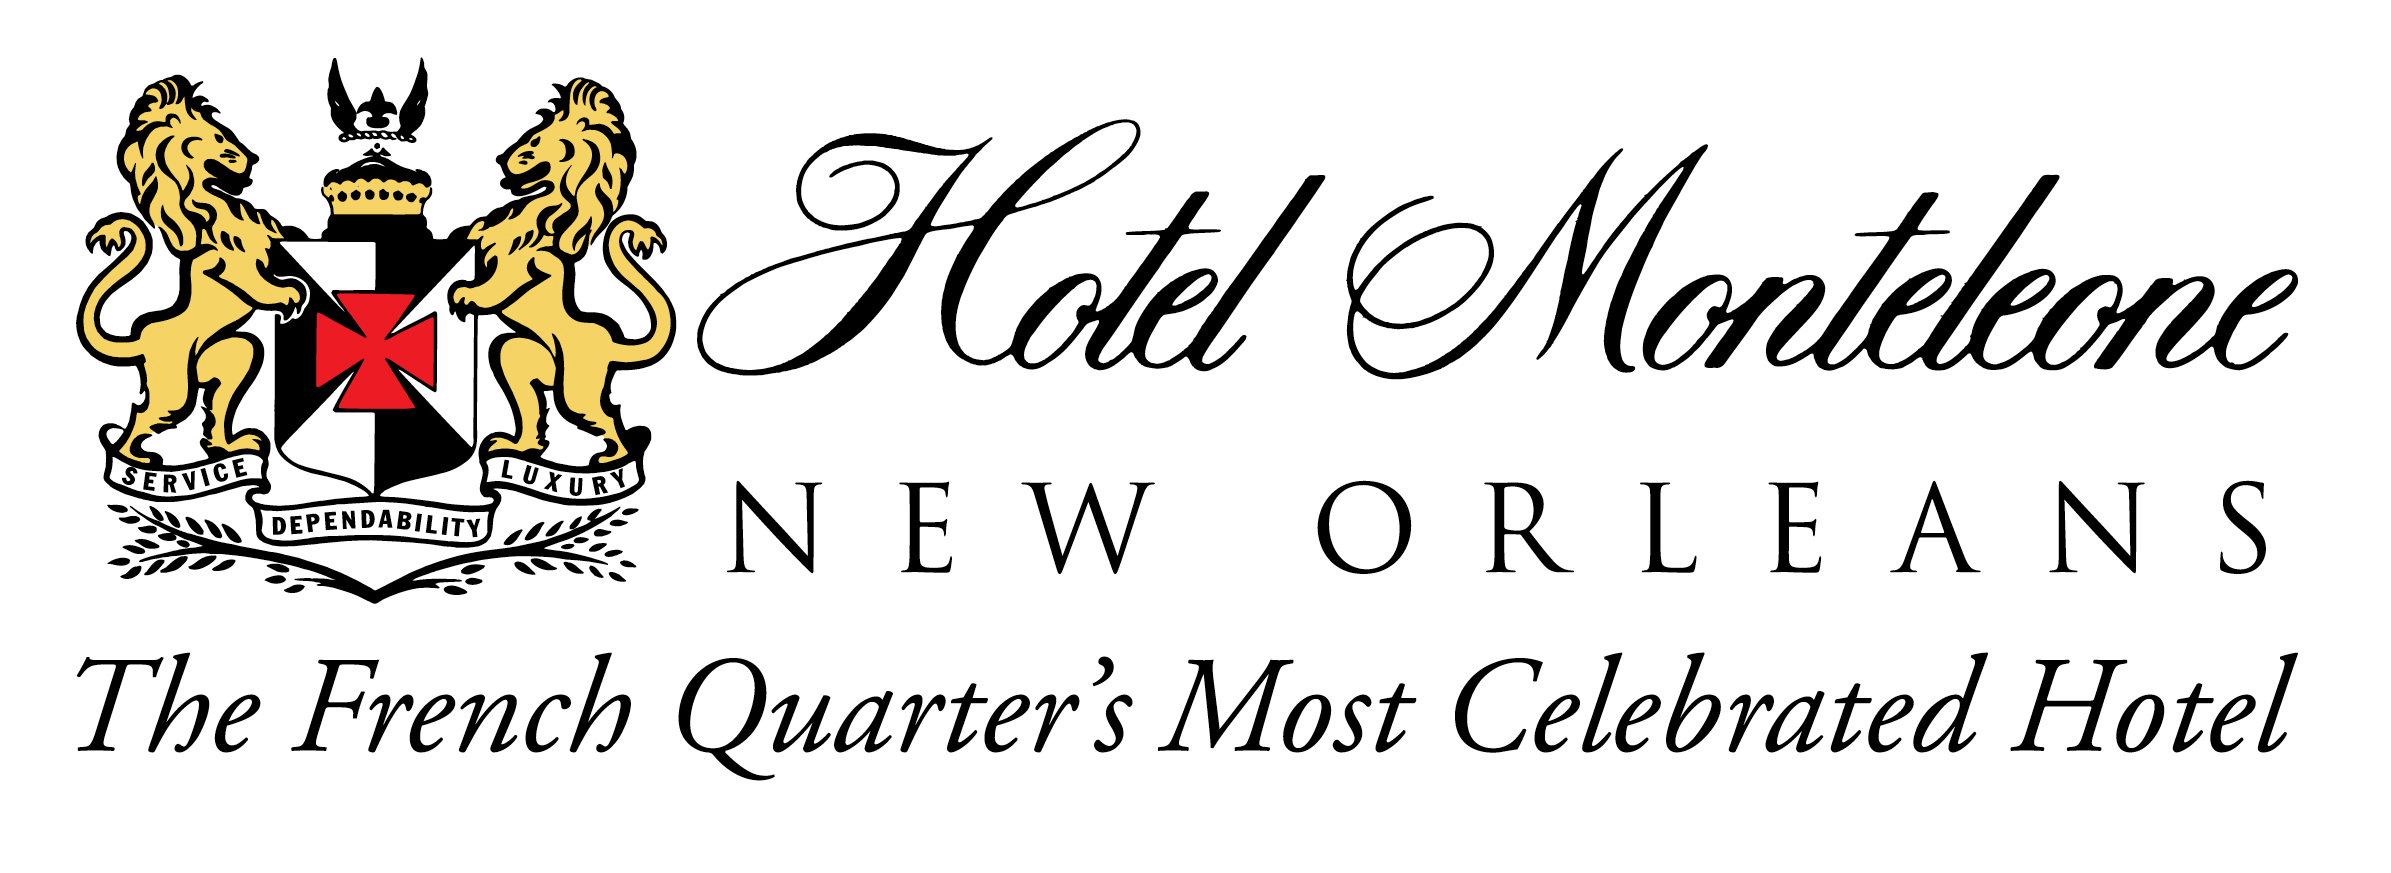 Hotel Monteleone, Luxury in New Orleans' French Quarter